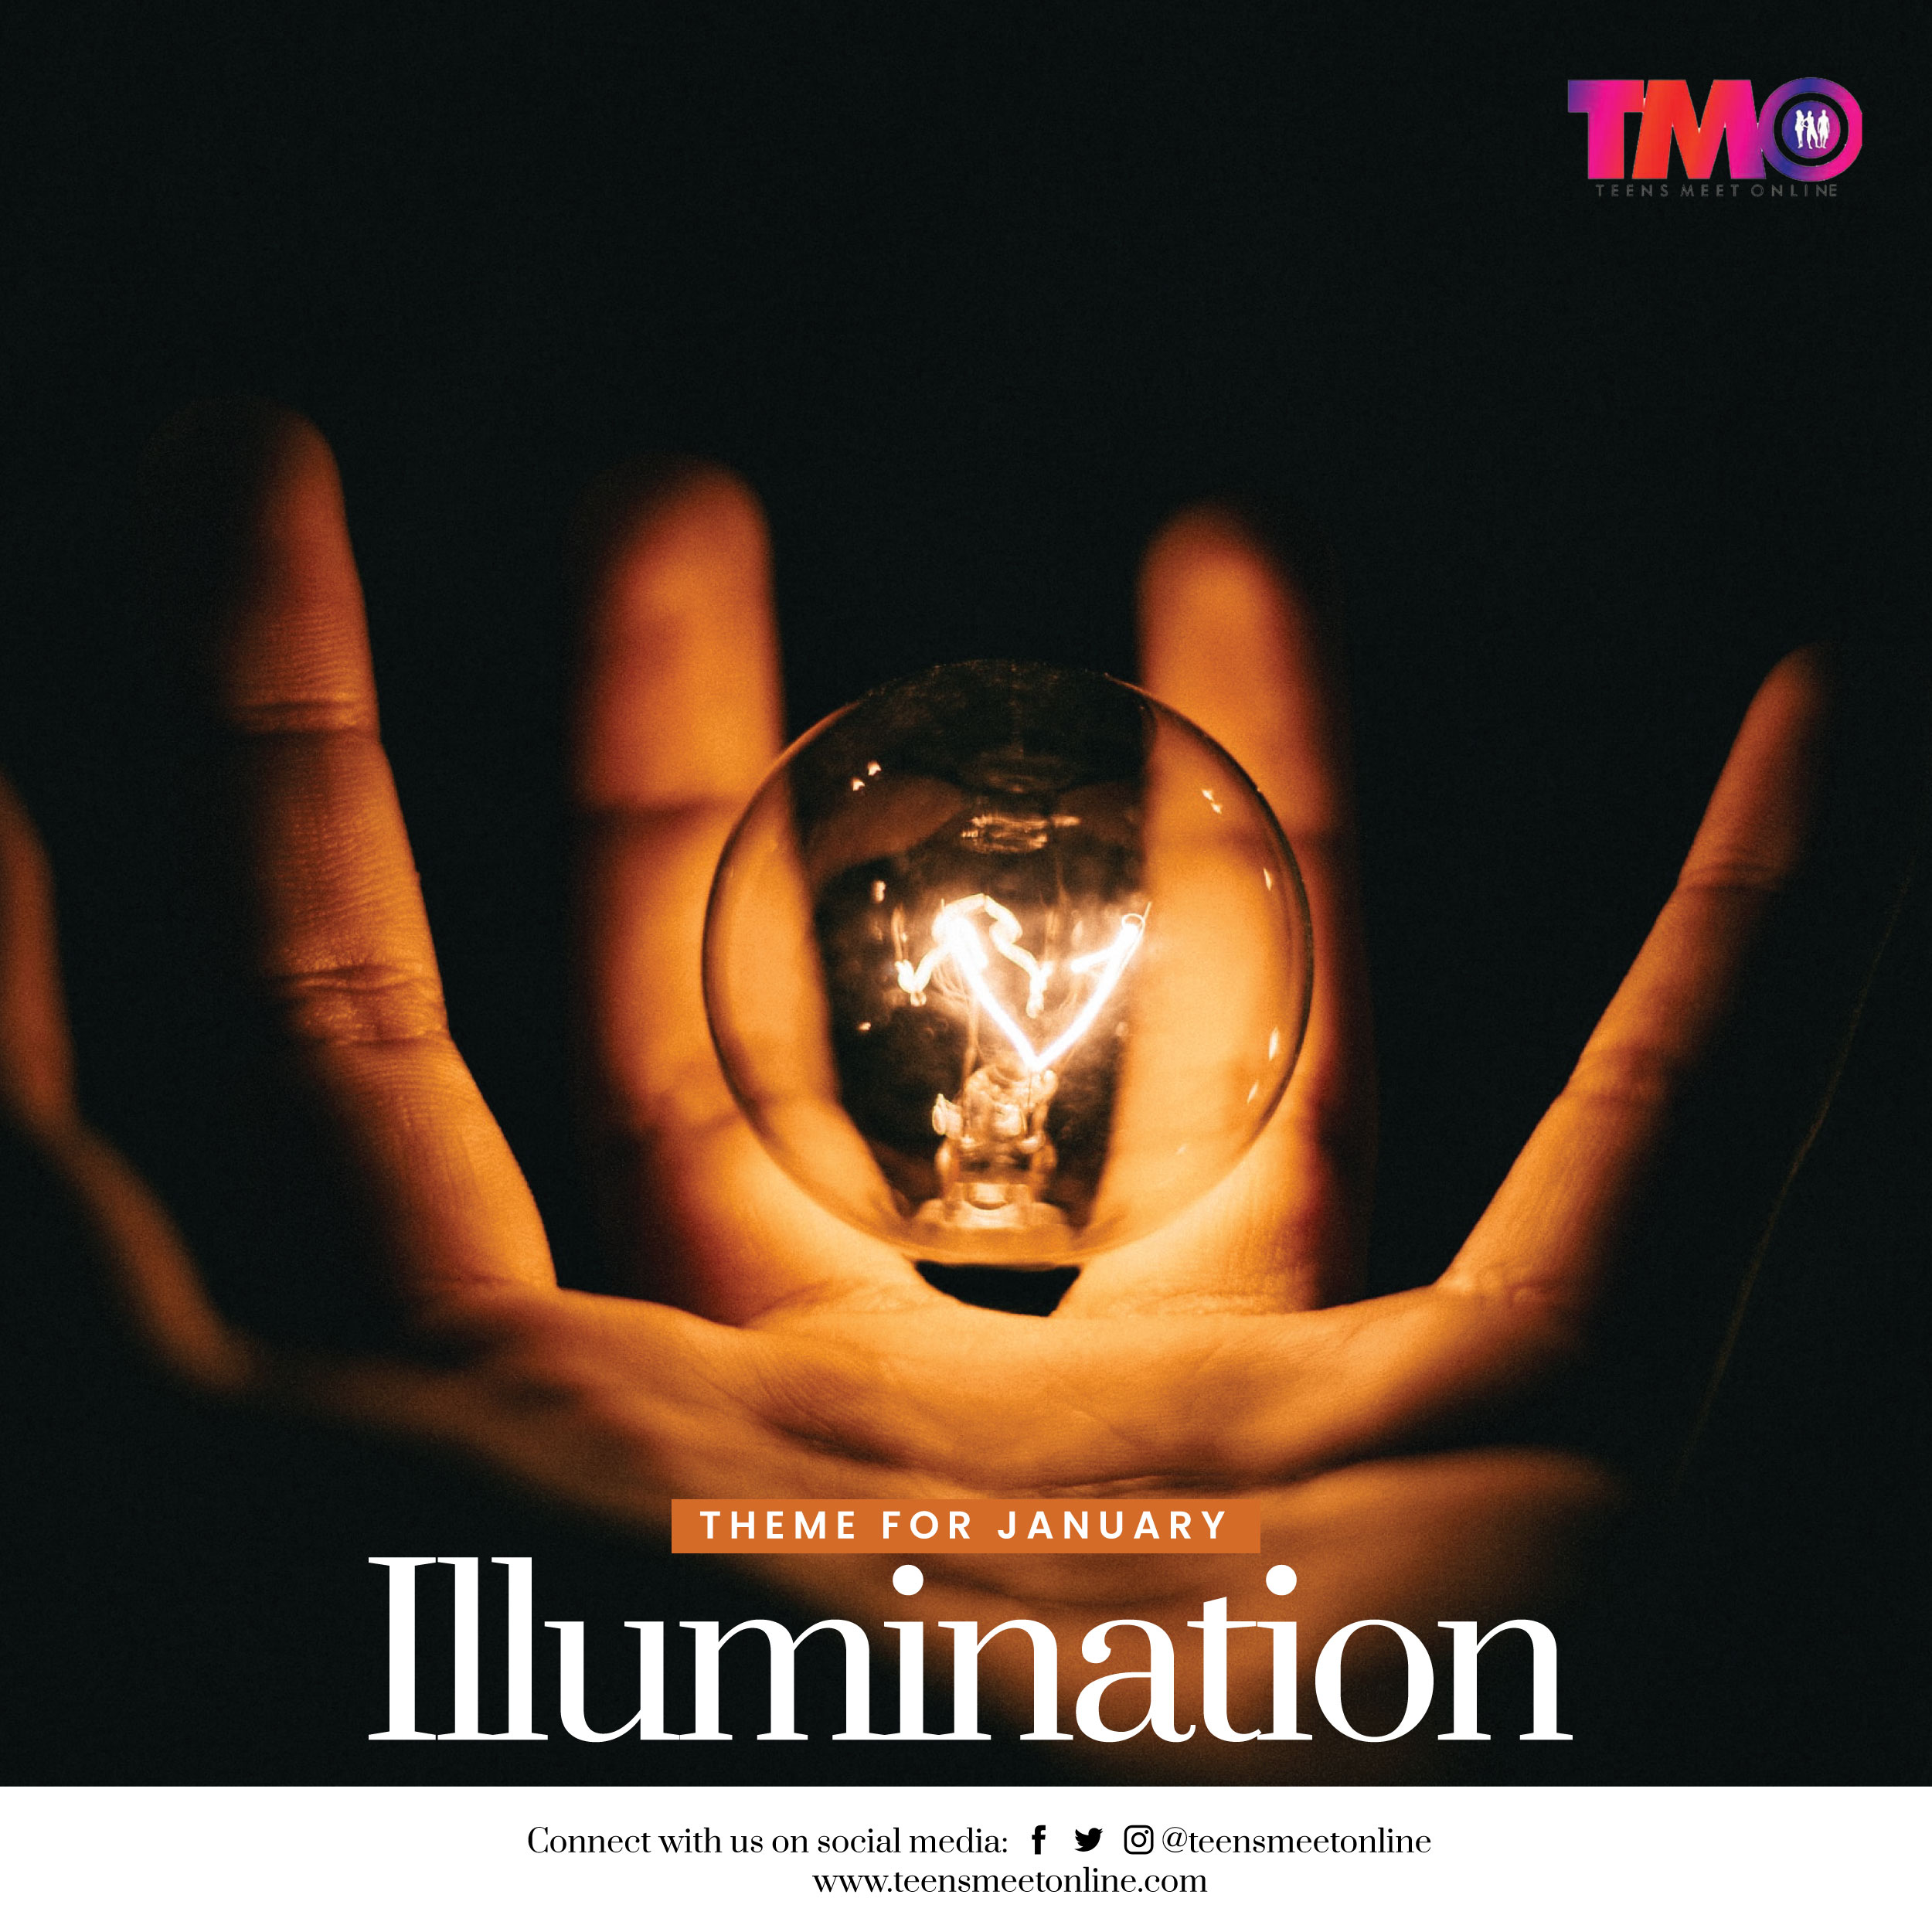 TMO Theme January 2021-Illumination